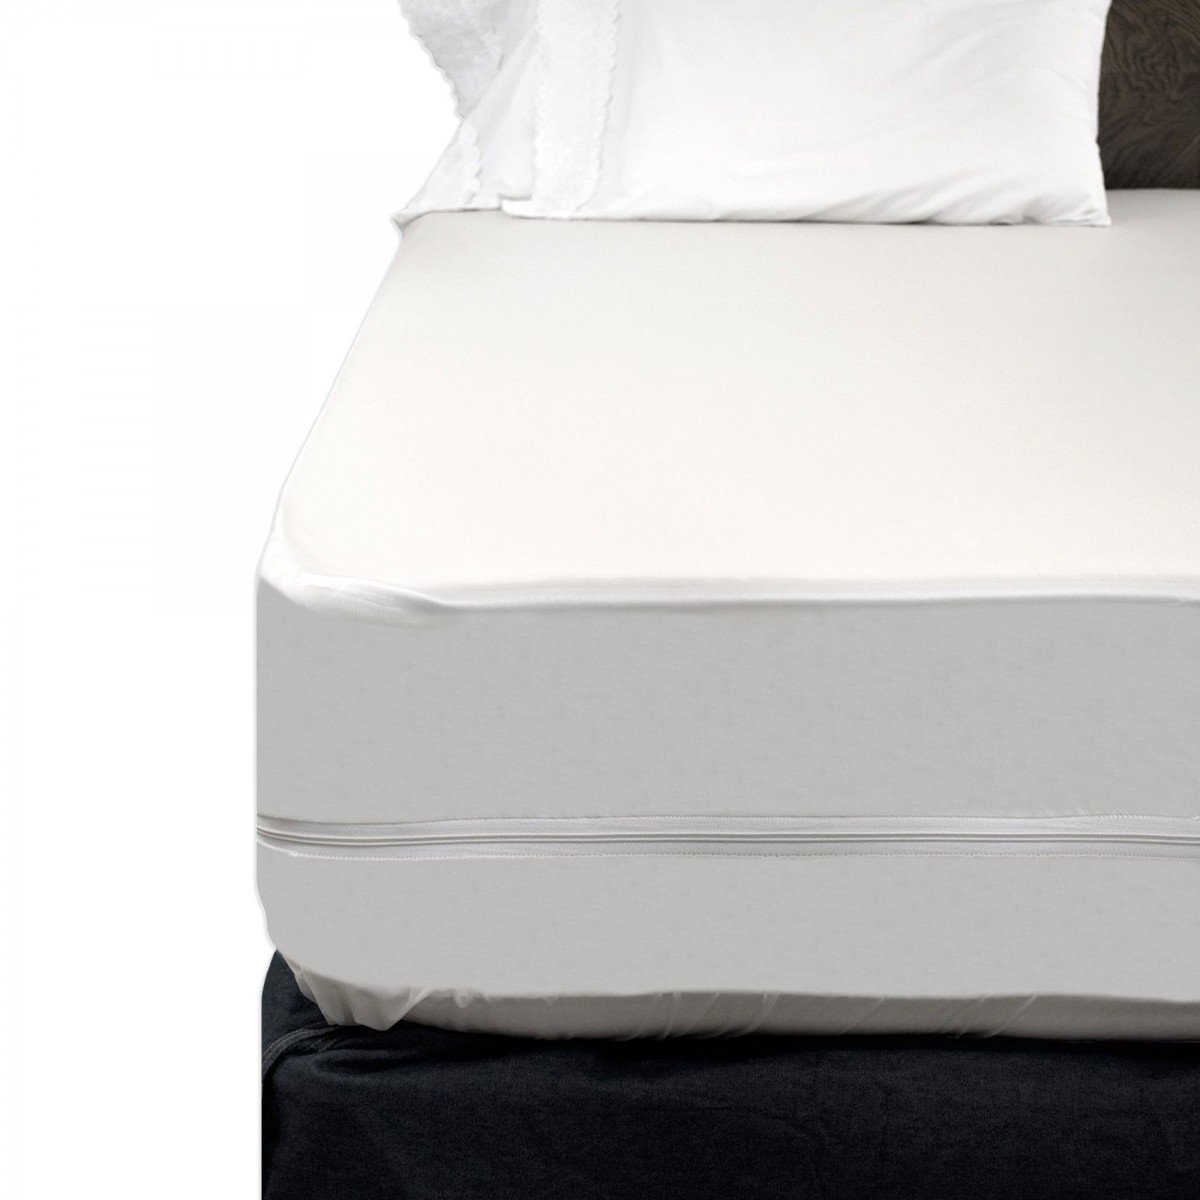 Zippered Mattress Cover Bed Bugs  Home Furniture Design